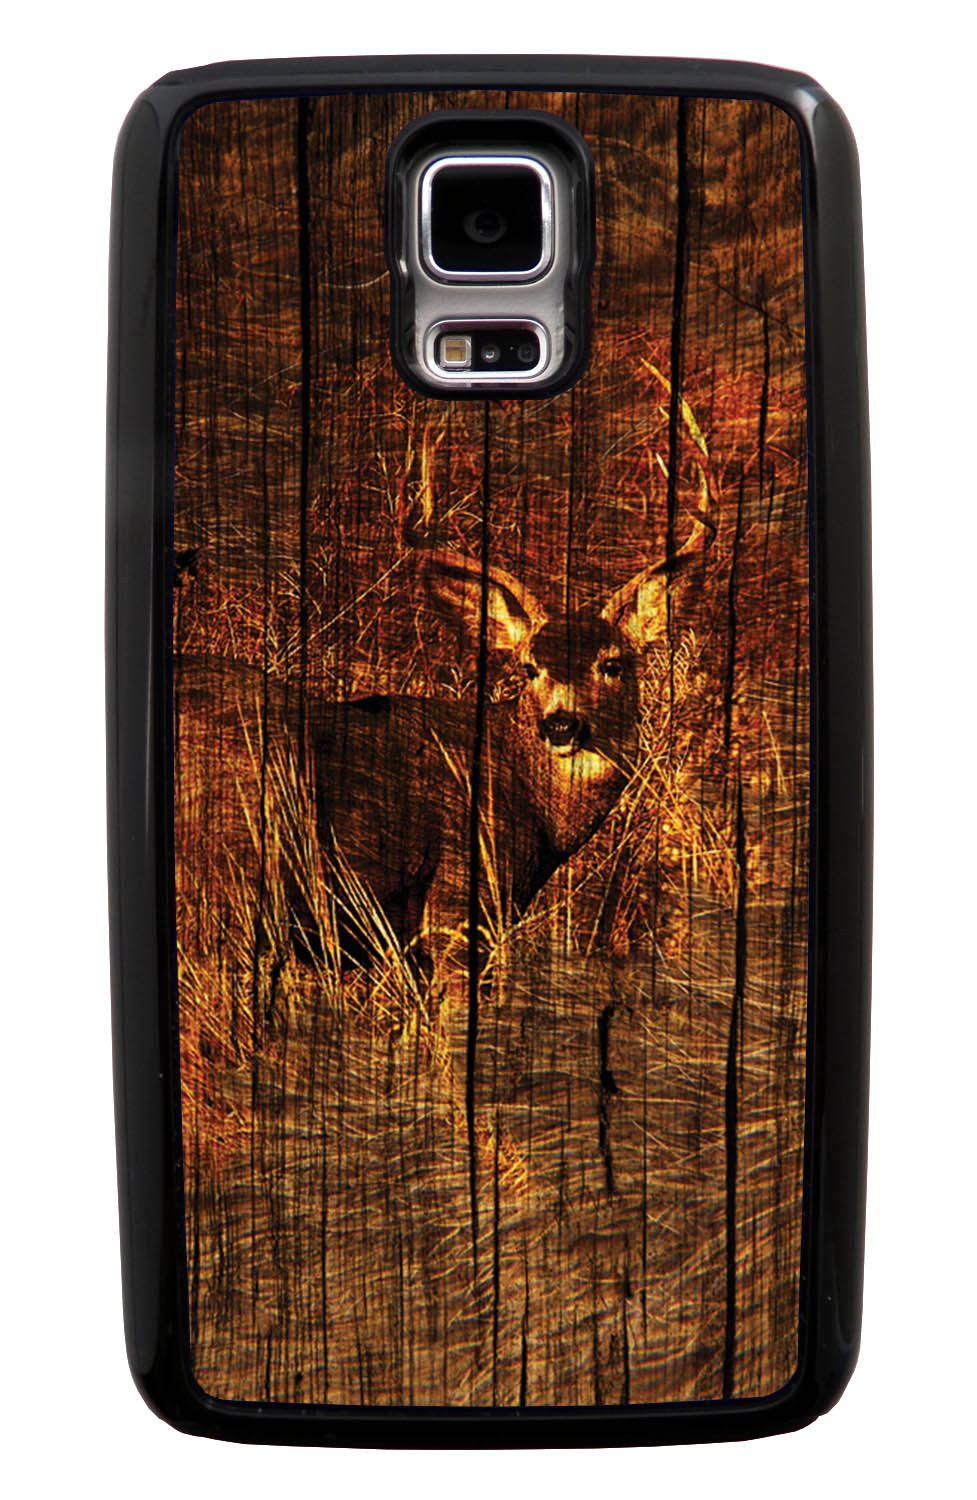 Samsung Galaxy S5 / SV Deer Case - Deer Photo with Wood Overlay - Picture - Black Tough Hybrid Case